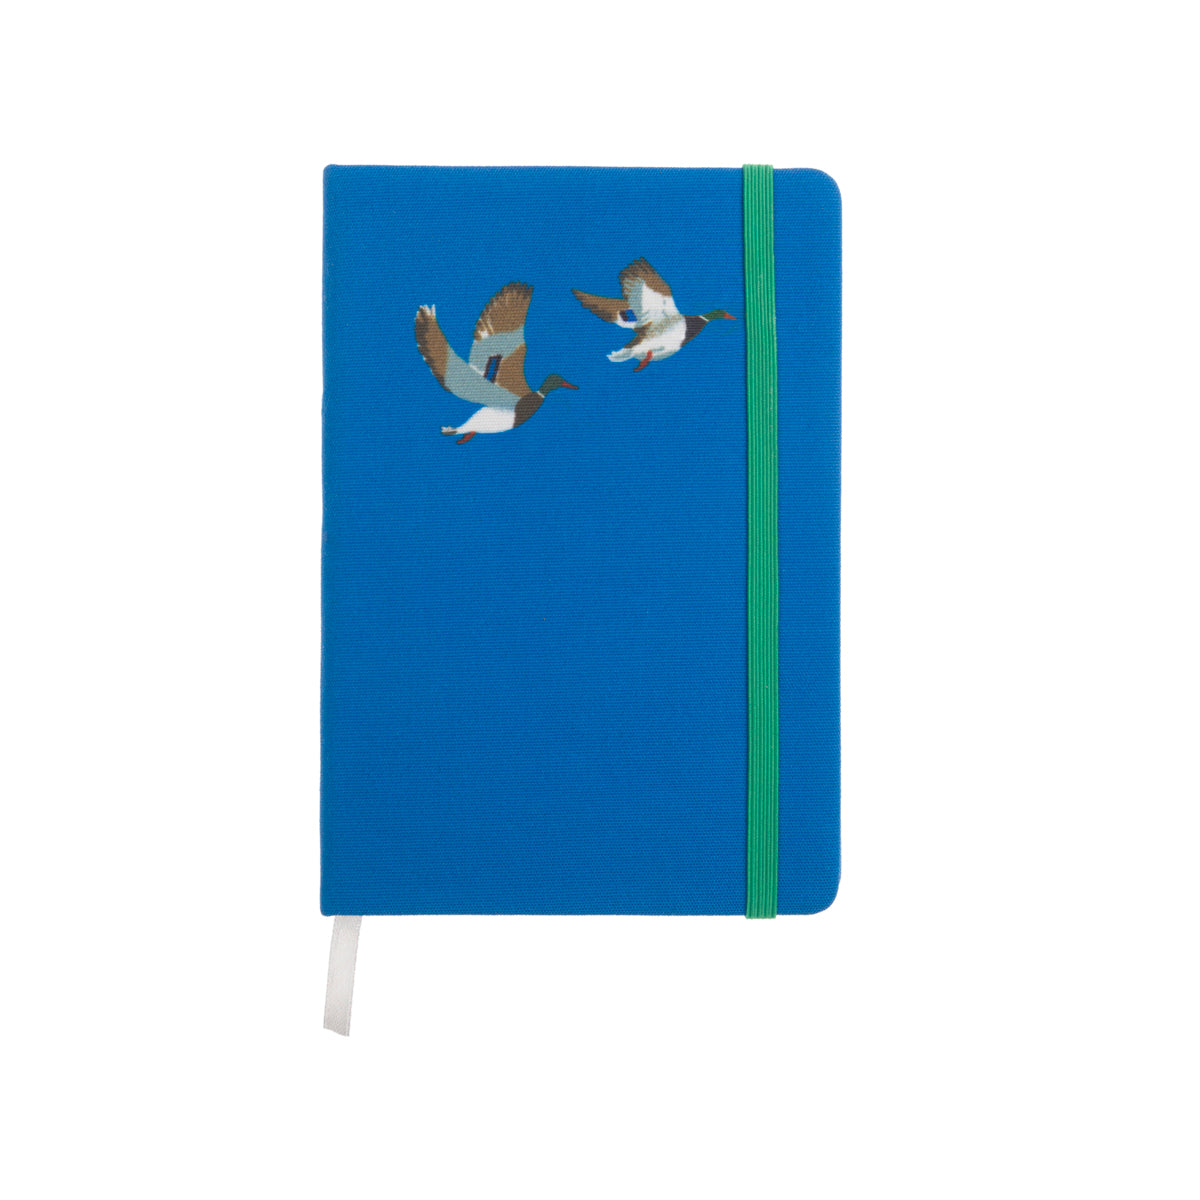 B6 notebook in Sophie Allport's Duck design